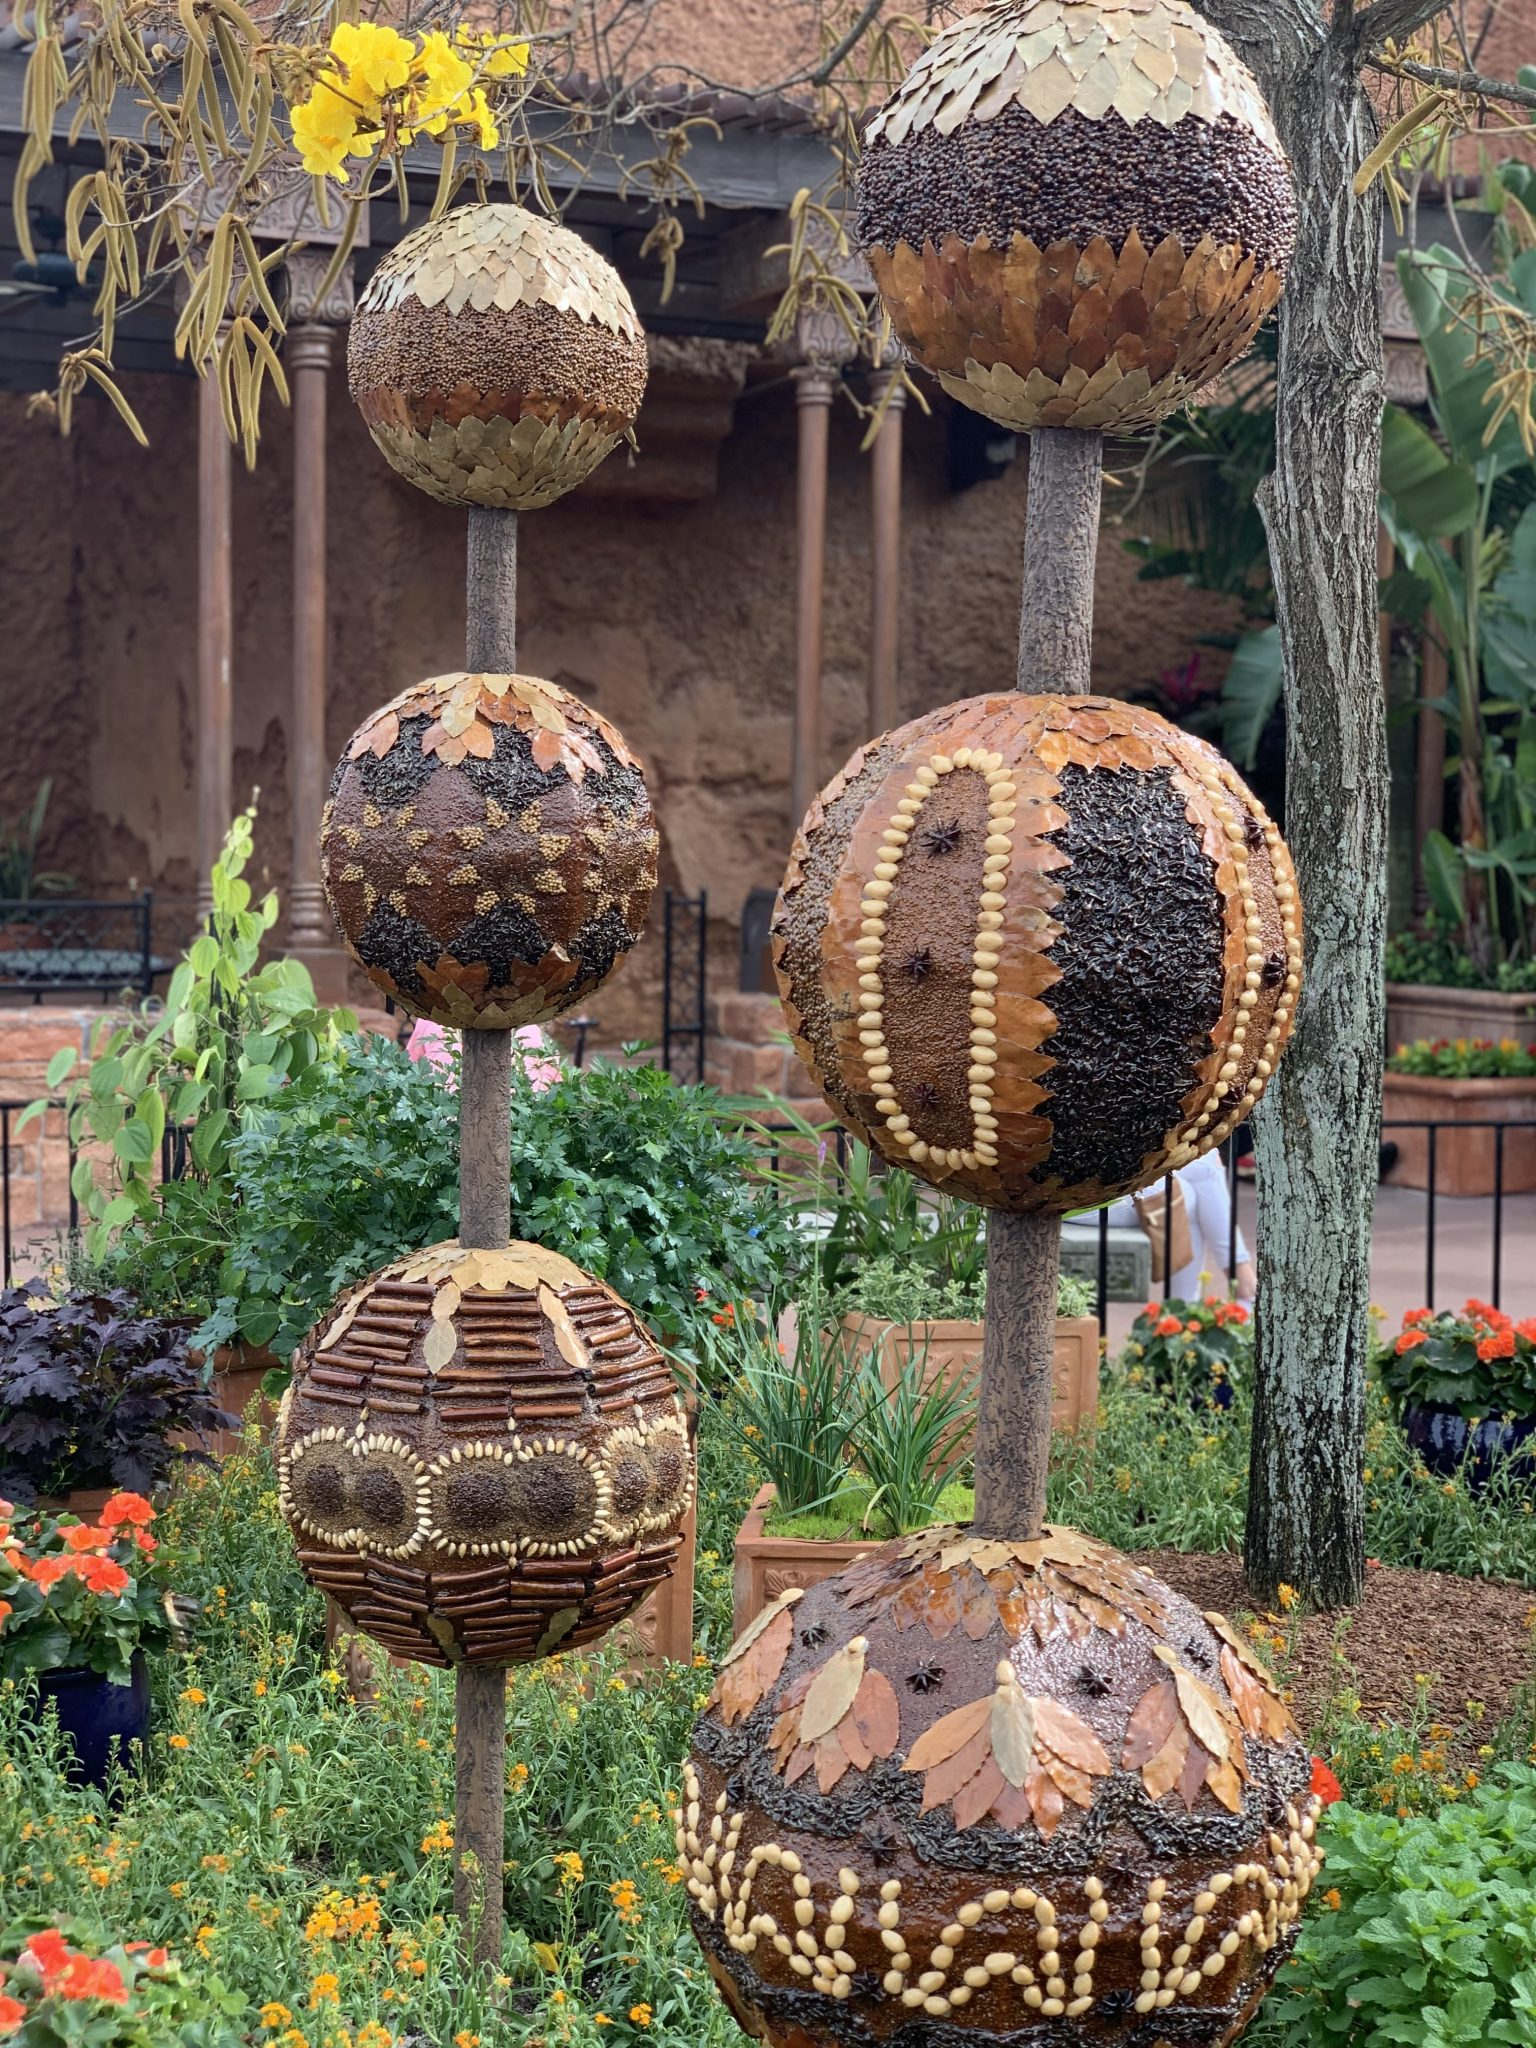 Urban Spice garden in Morocco at the Epcot Flower and Garden Festival